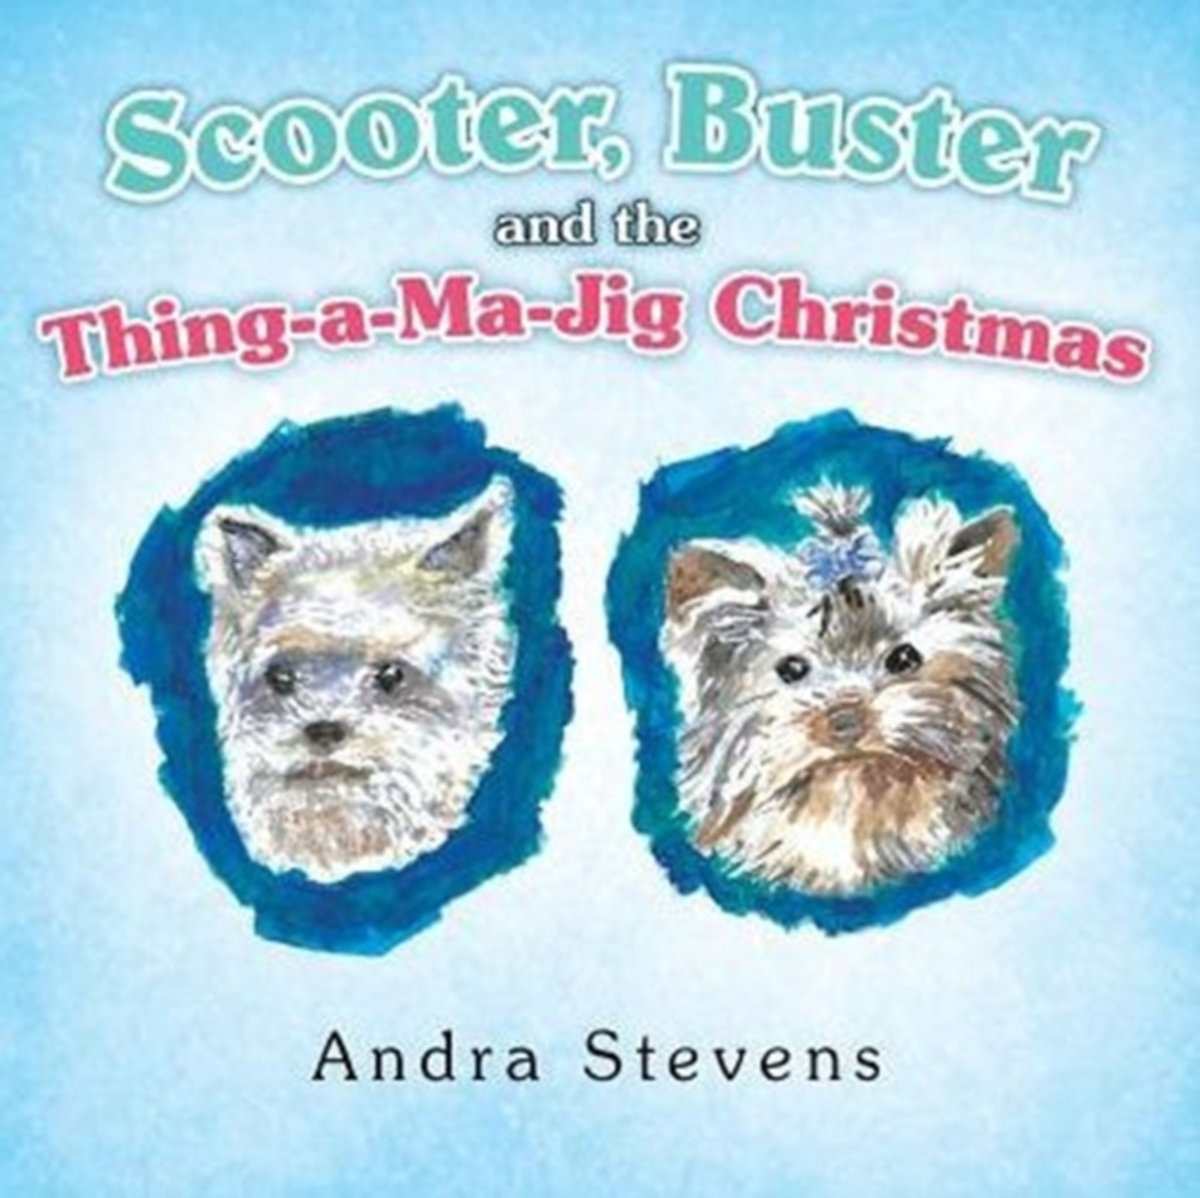 Scooter, Buster and the Thing-A-Ma-Jig Christmas